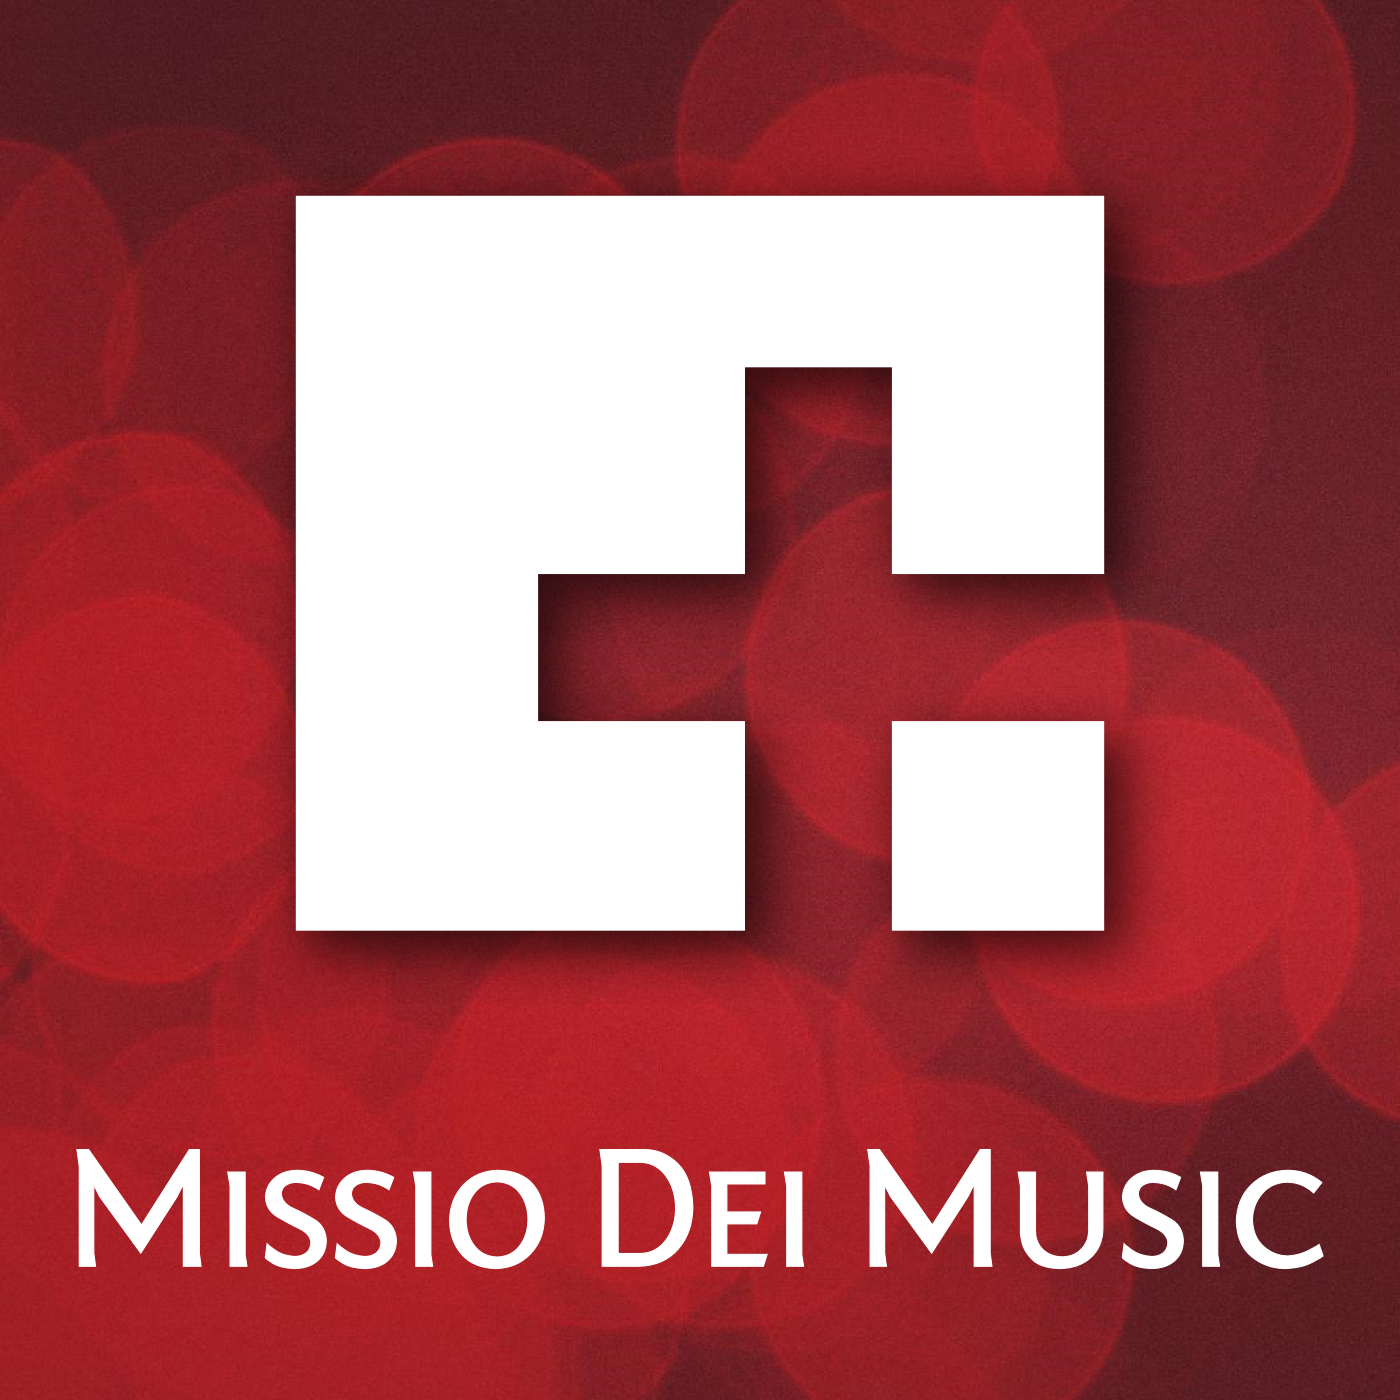 Music - Churches in Asheville, Missio Dei Church, Asheville, NC